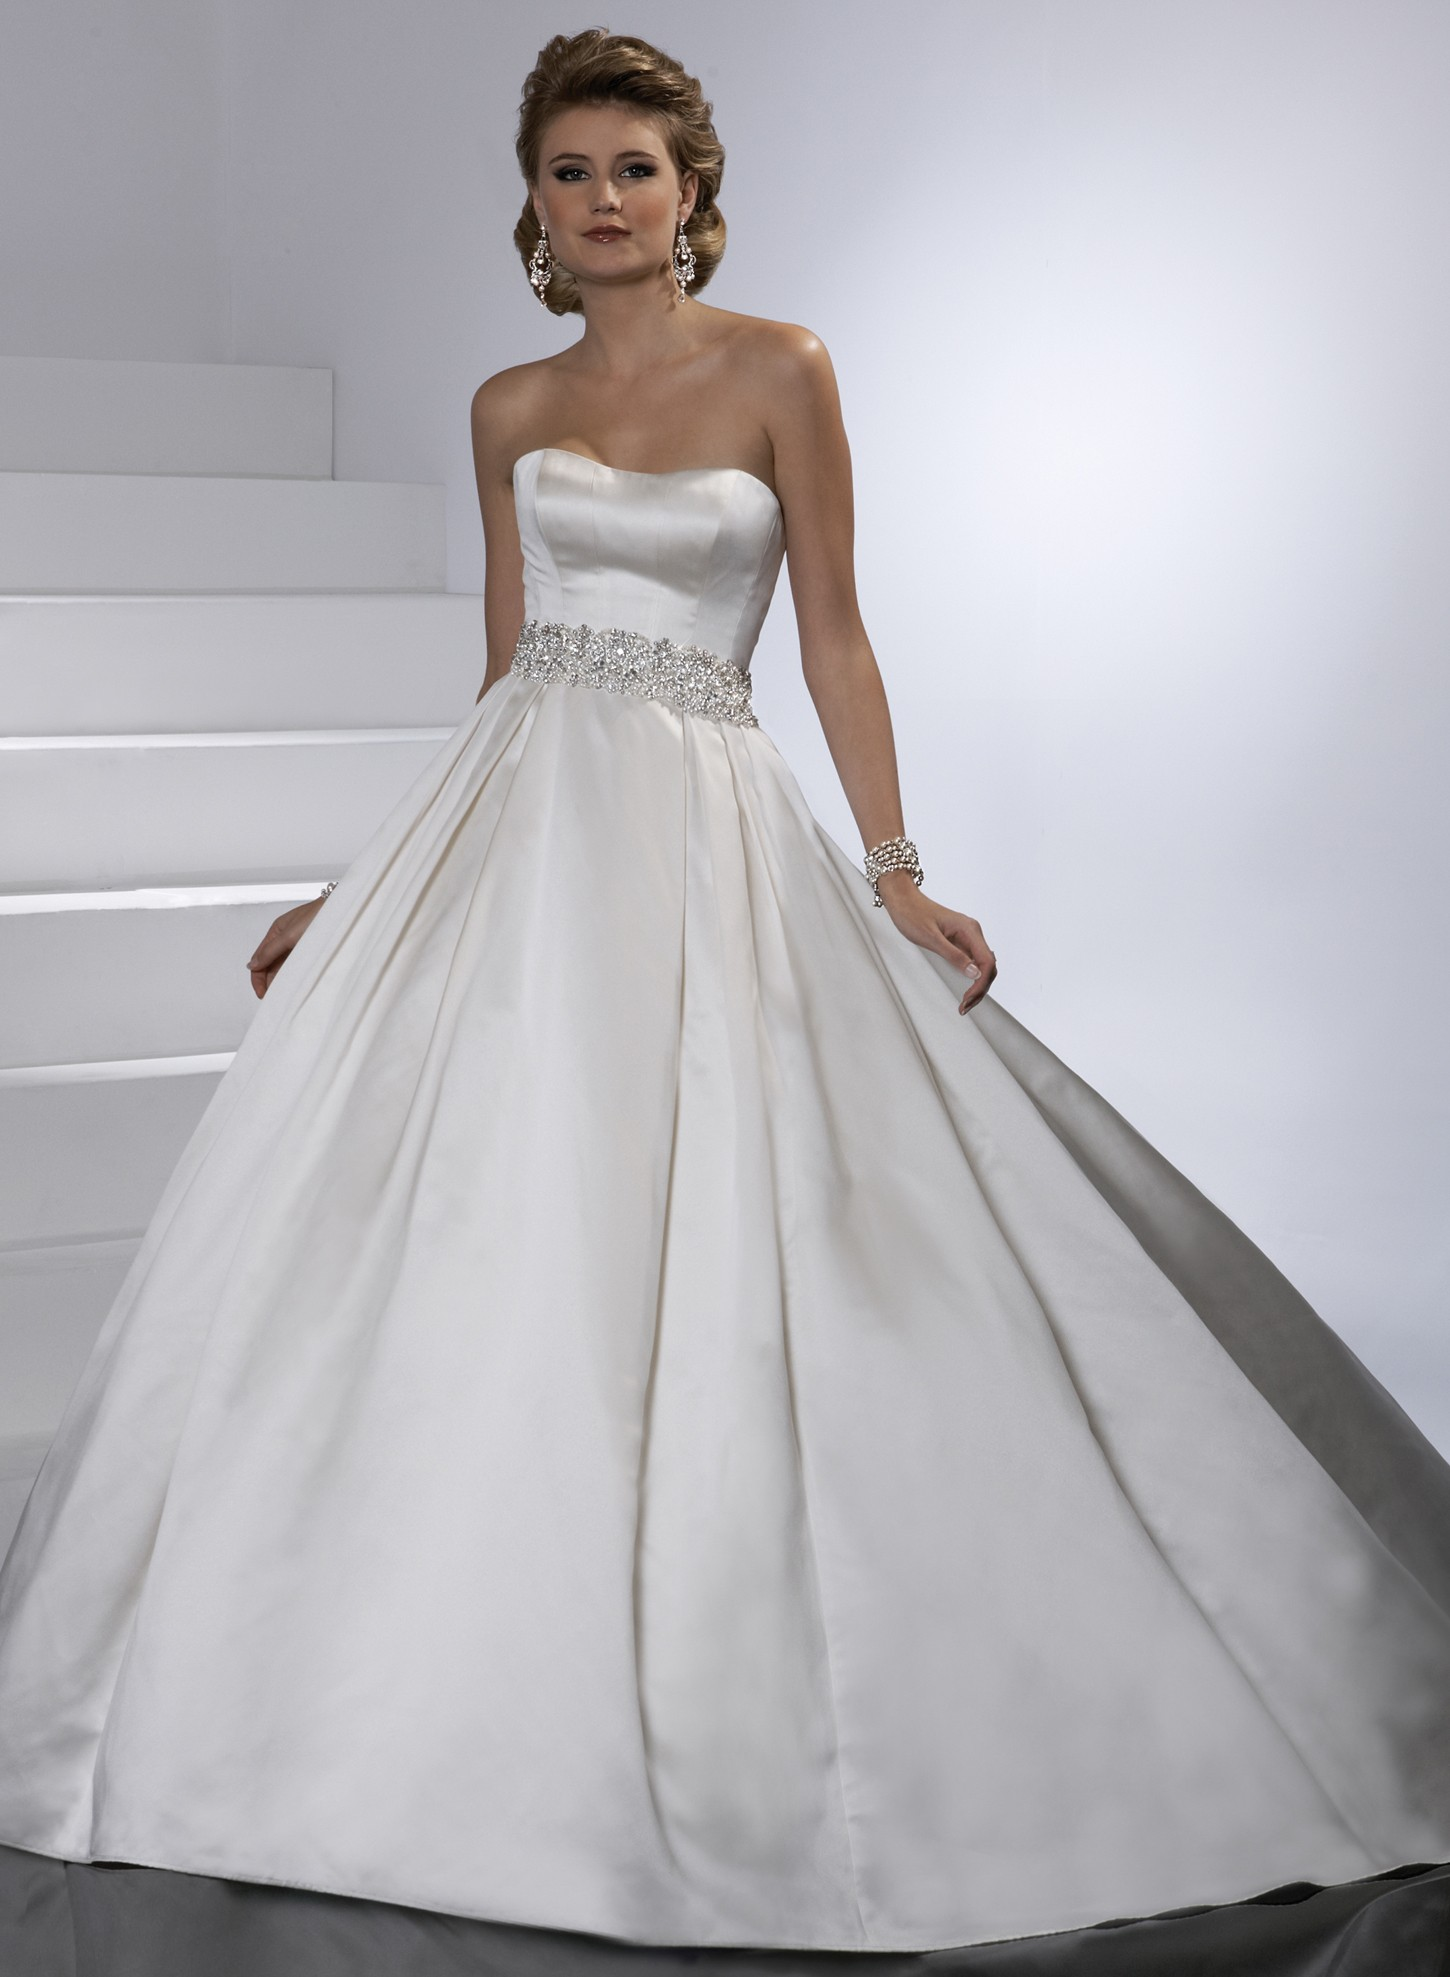 graceful satin ball gown wedding dresses sang maestro With satin ball gown wedding dresses